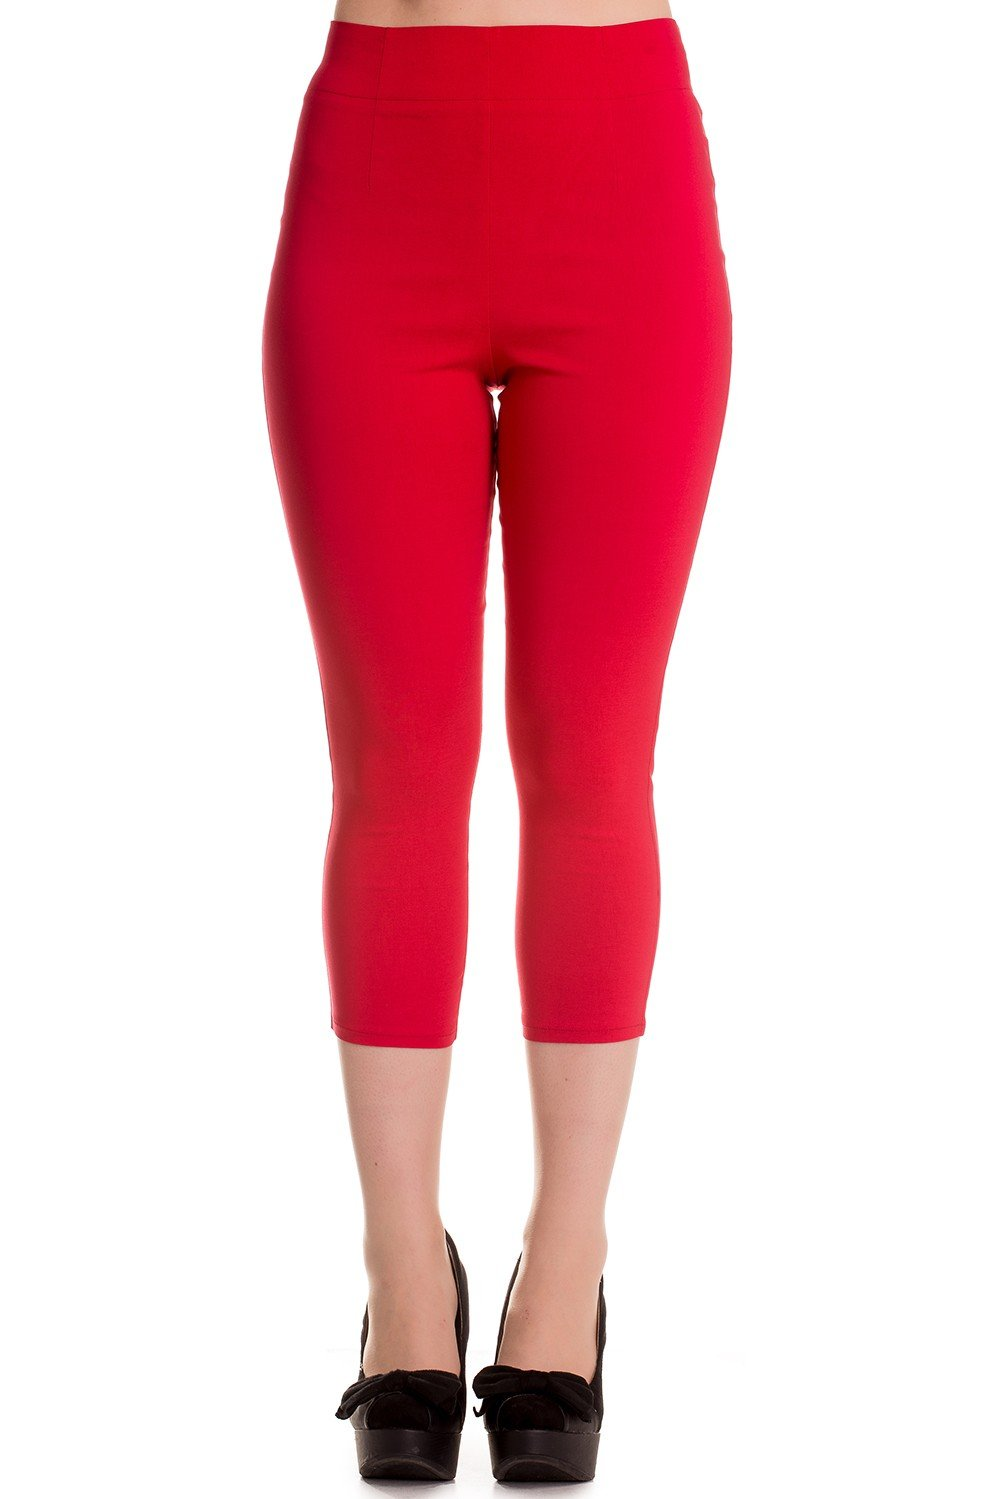 Hell Bunny Tina 50s Vintage Retro Style Capri Trousers 3/4 Length Pedal Pushers - Red (2XL)